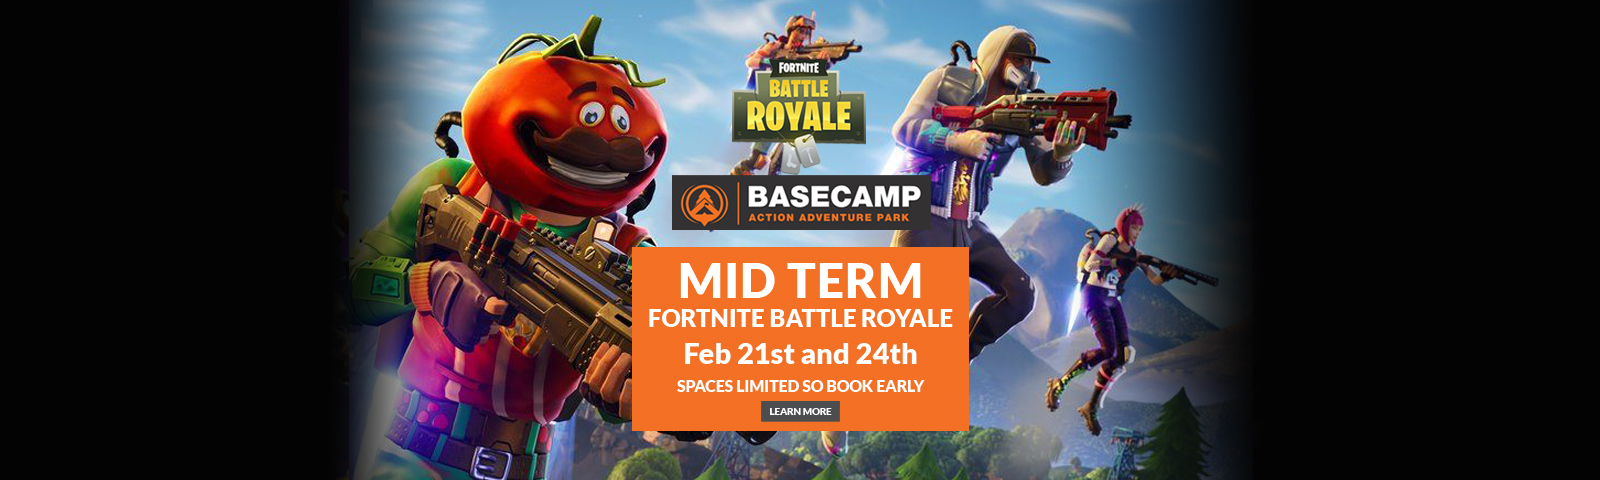 2-MID-TERM-Battle-Royale_slider